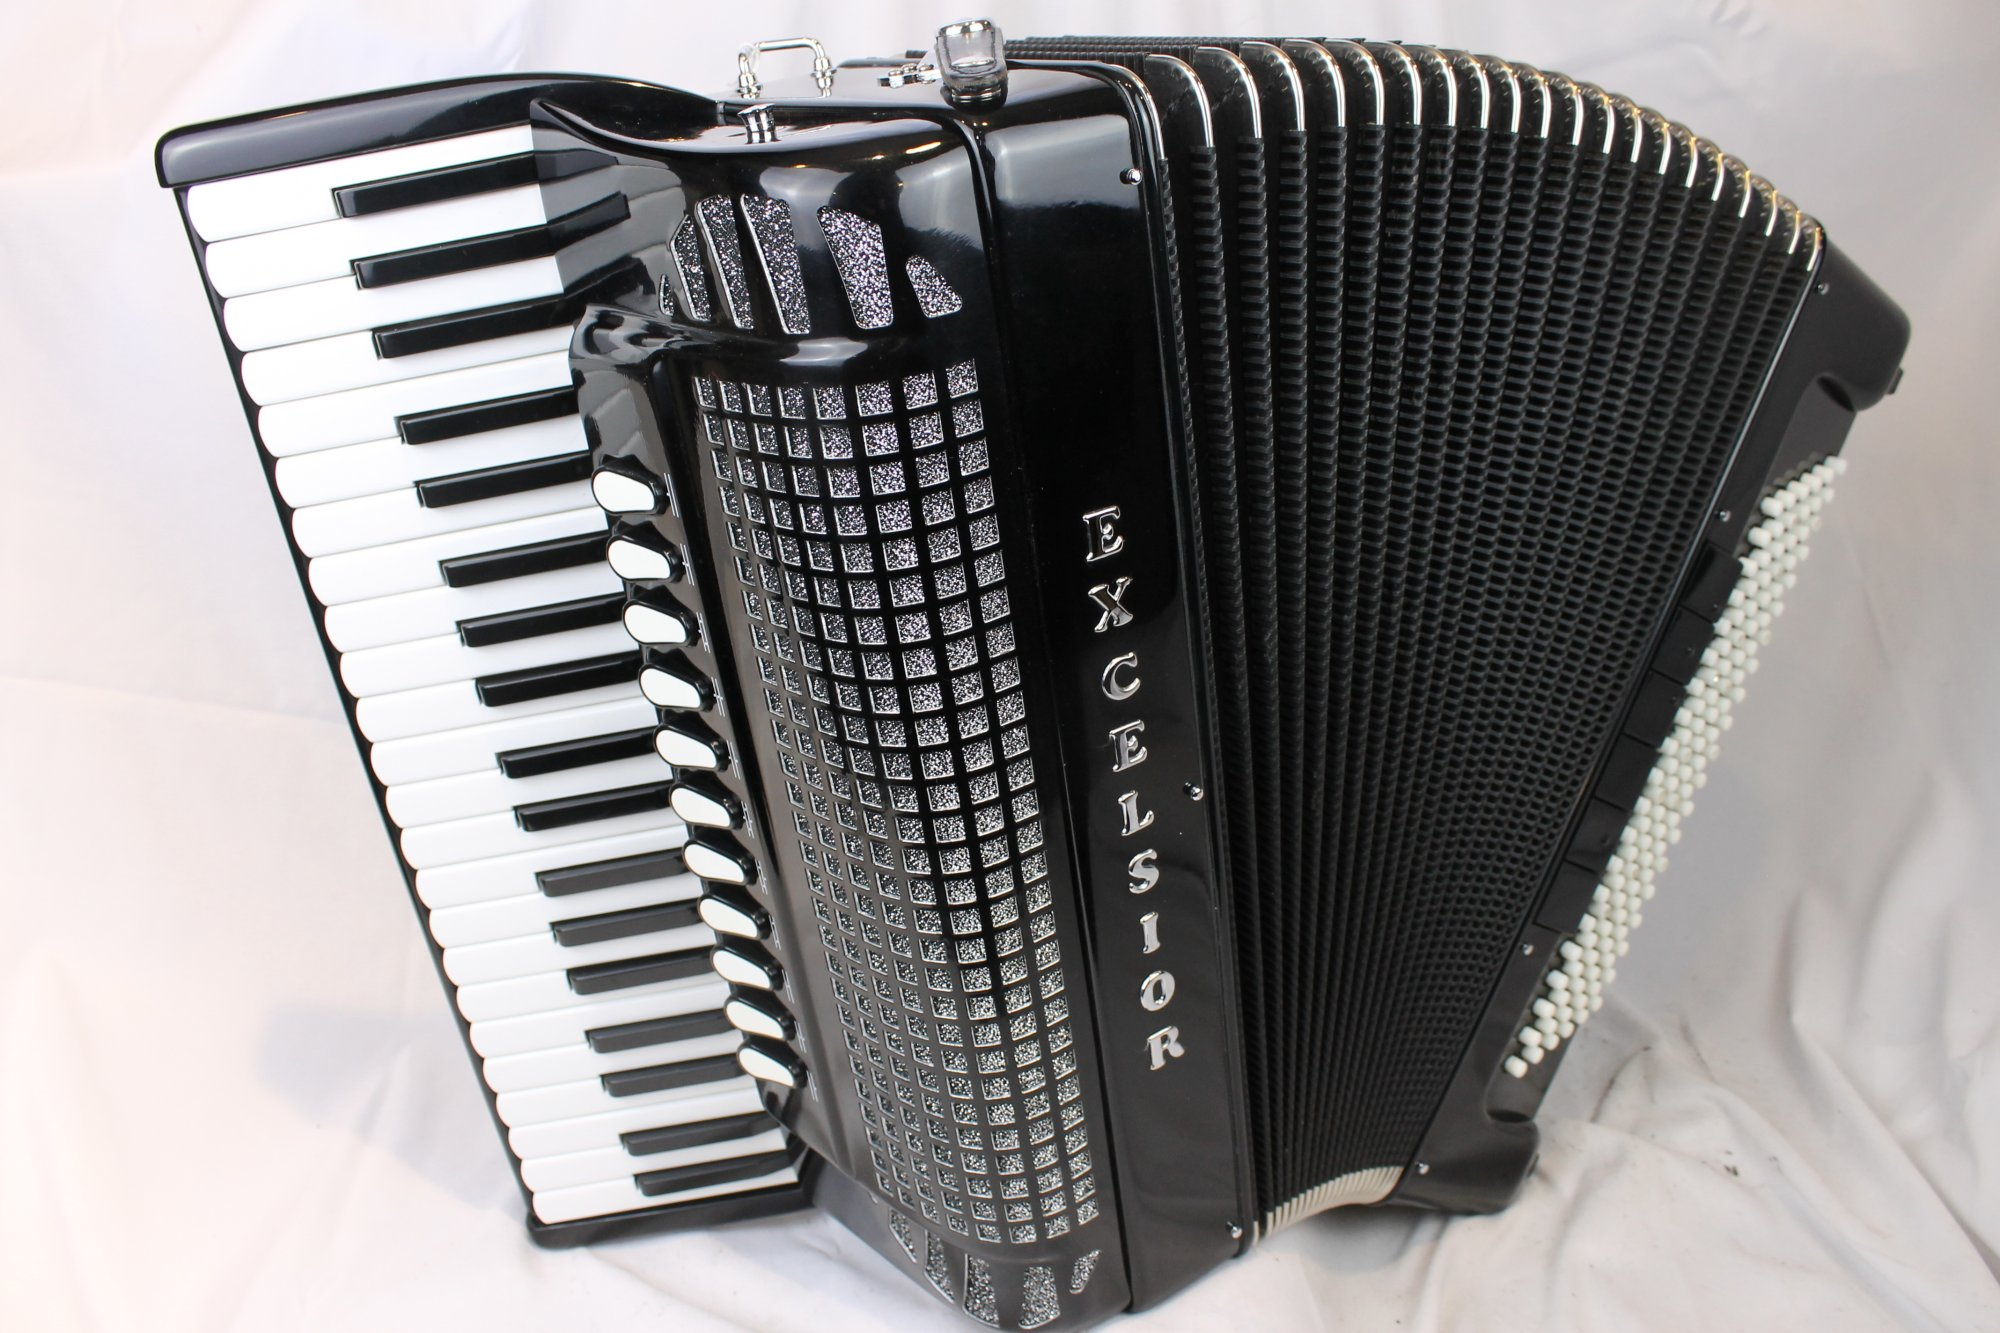 4046 - Like New Black Excelsior Free Bass Piano Accordion LMMH 41 120